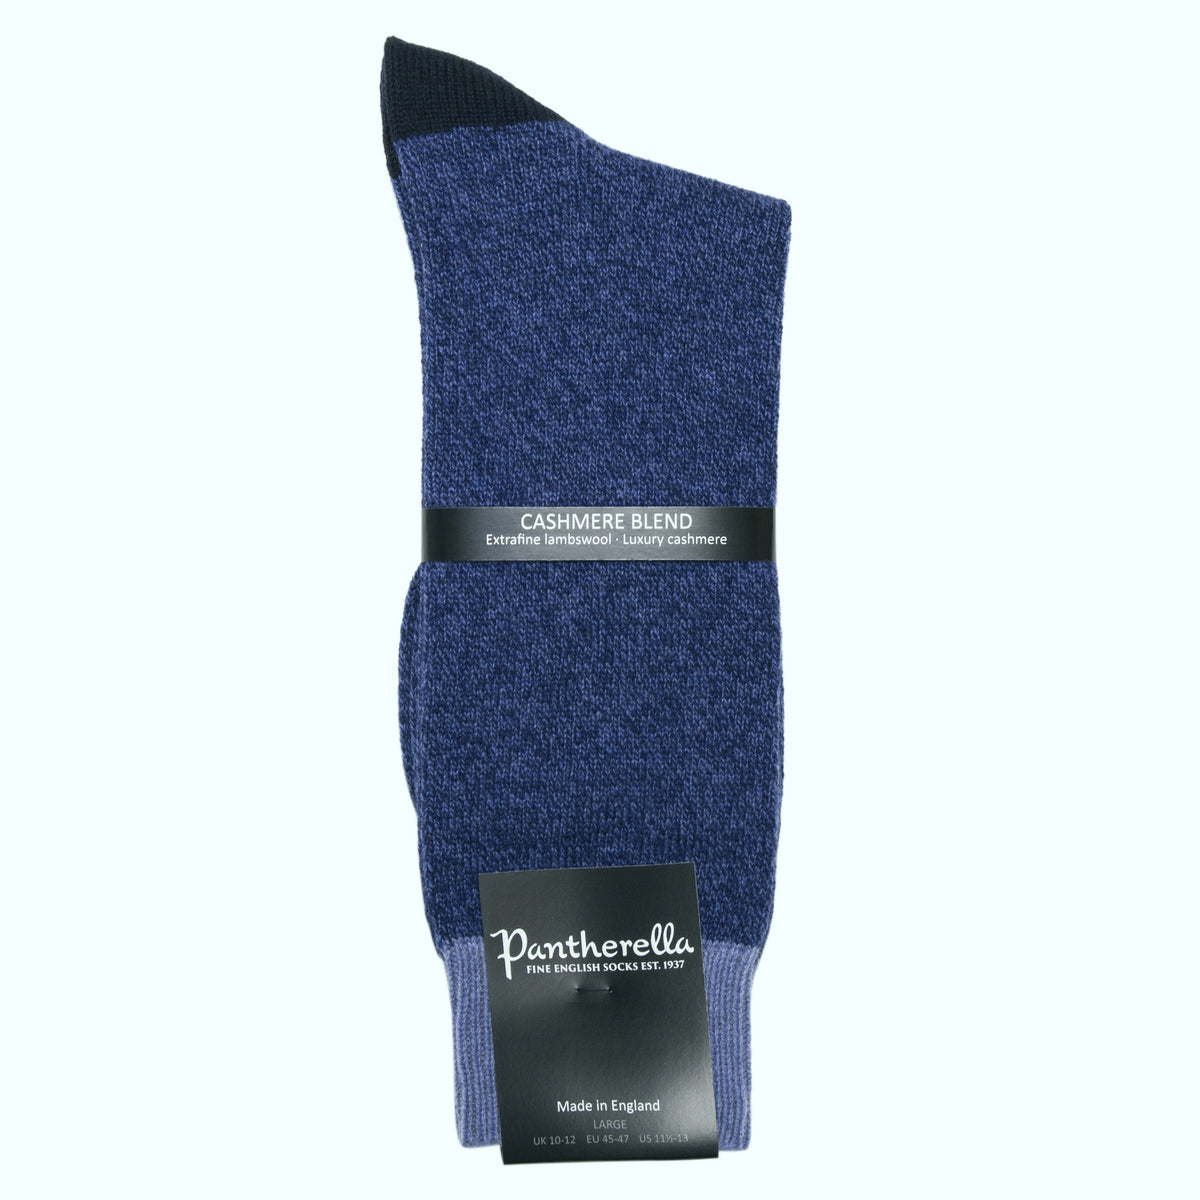 Dark Blue Cashmere Blend Contrast Socks for Men | buy now at The Cashmere Choice London